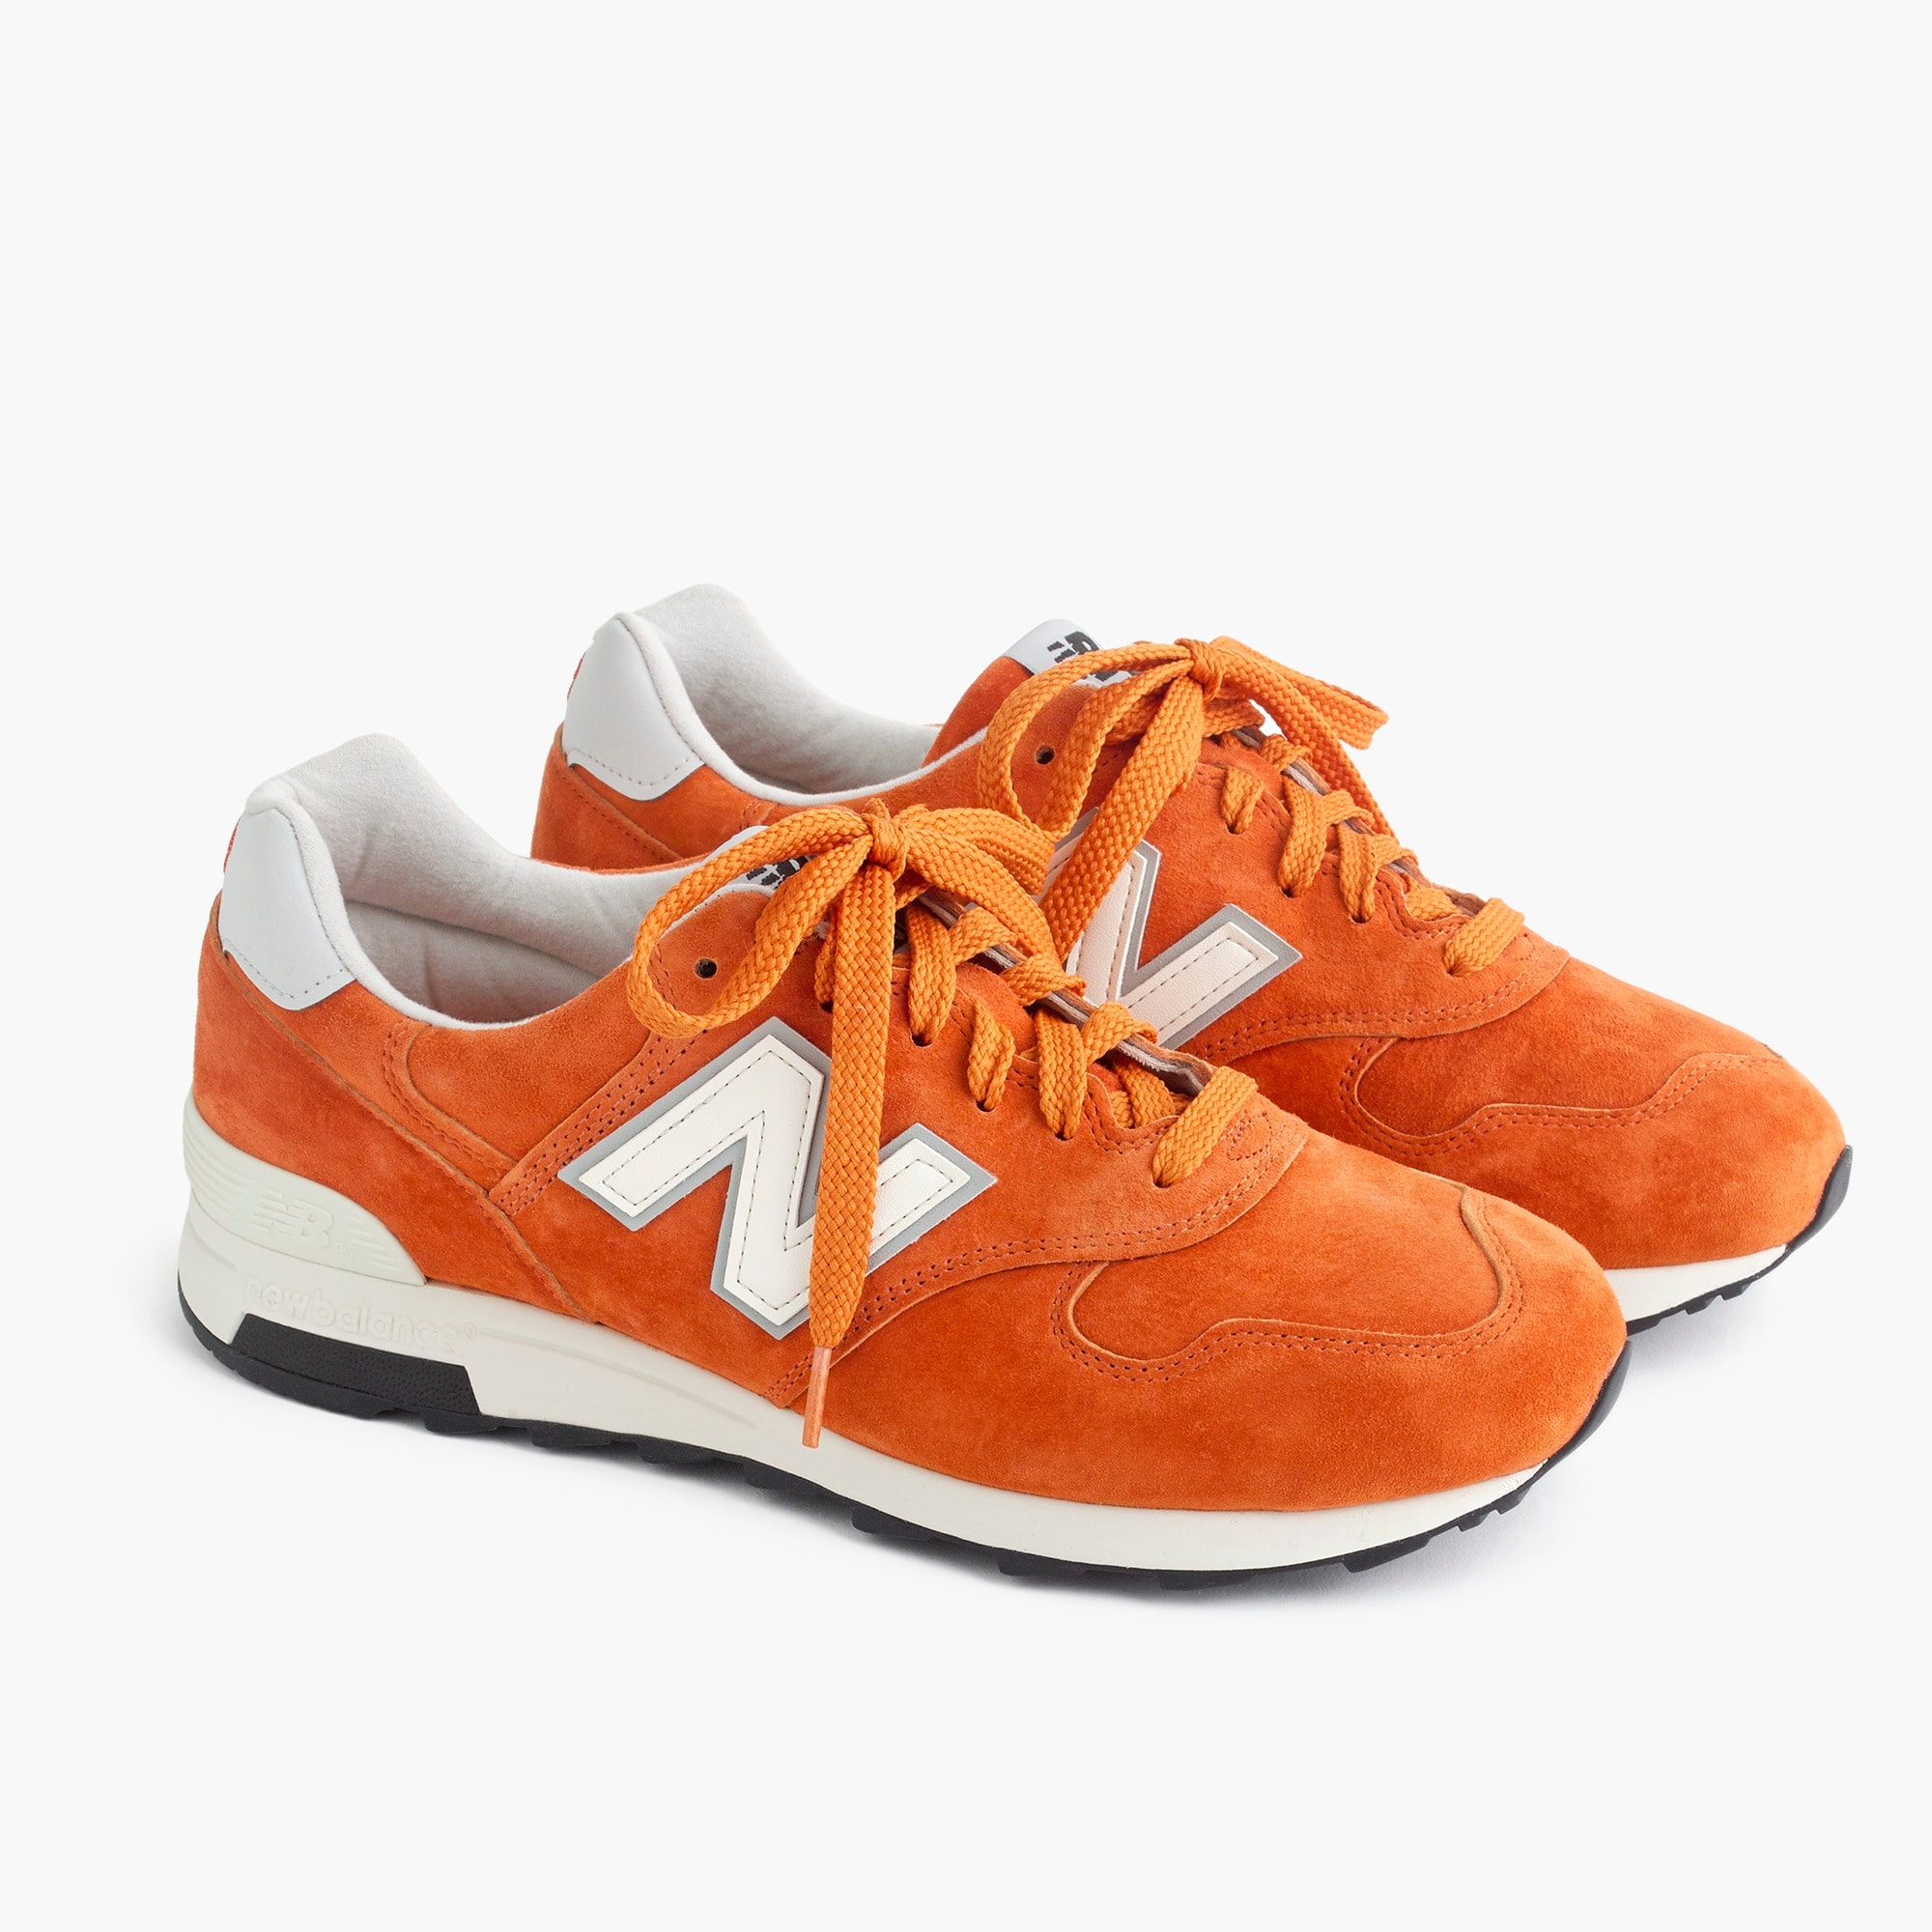 mens New Balance® for J.Crew 1400 sneakers in orange